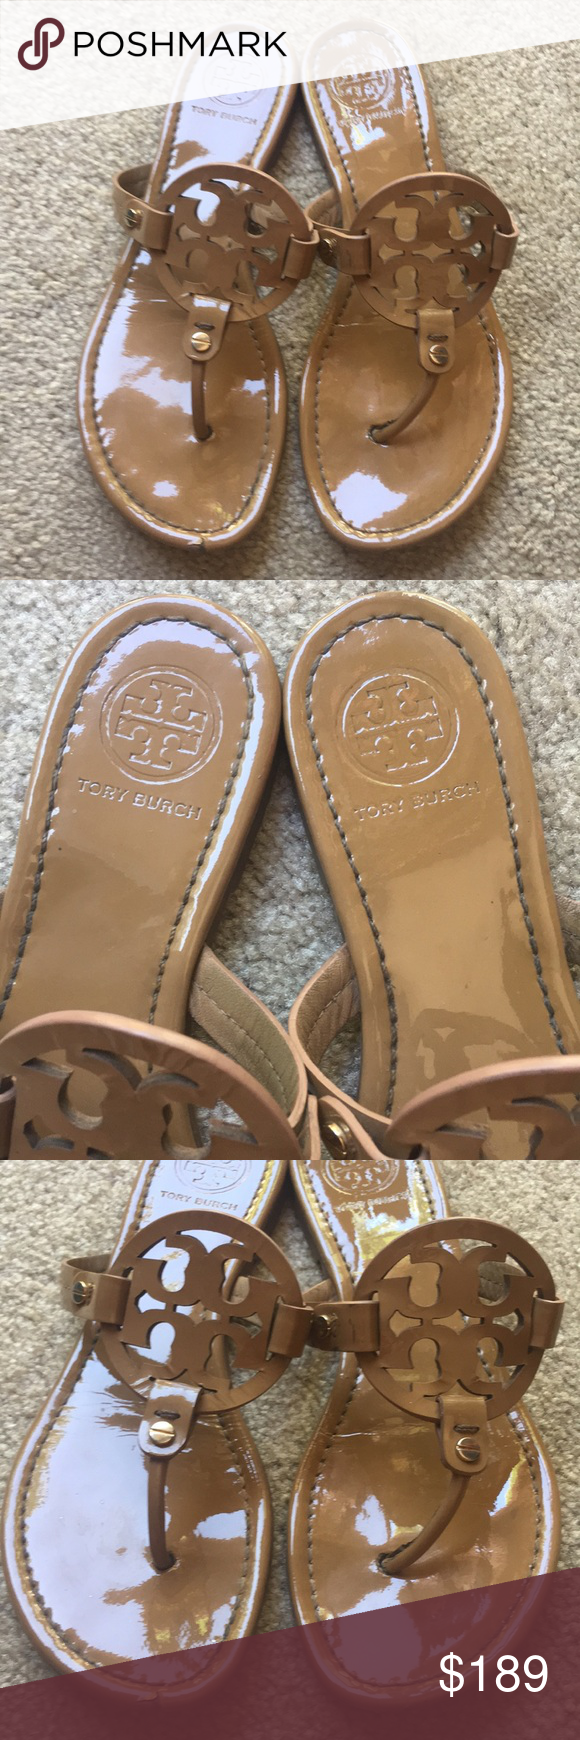 9b7beaa93891 Tory Burch Sand Nude Patent Leather Miller Sandals Tory Burch Miller s in a size  8 M